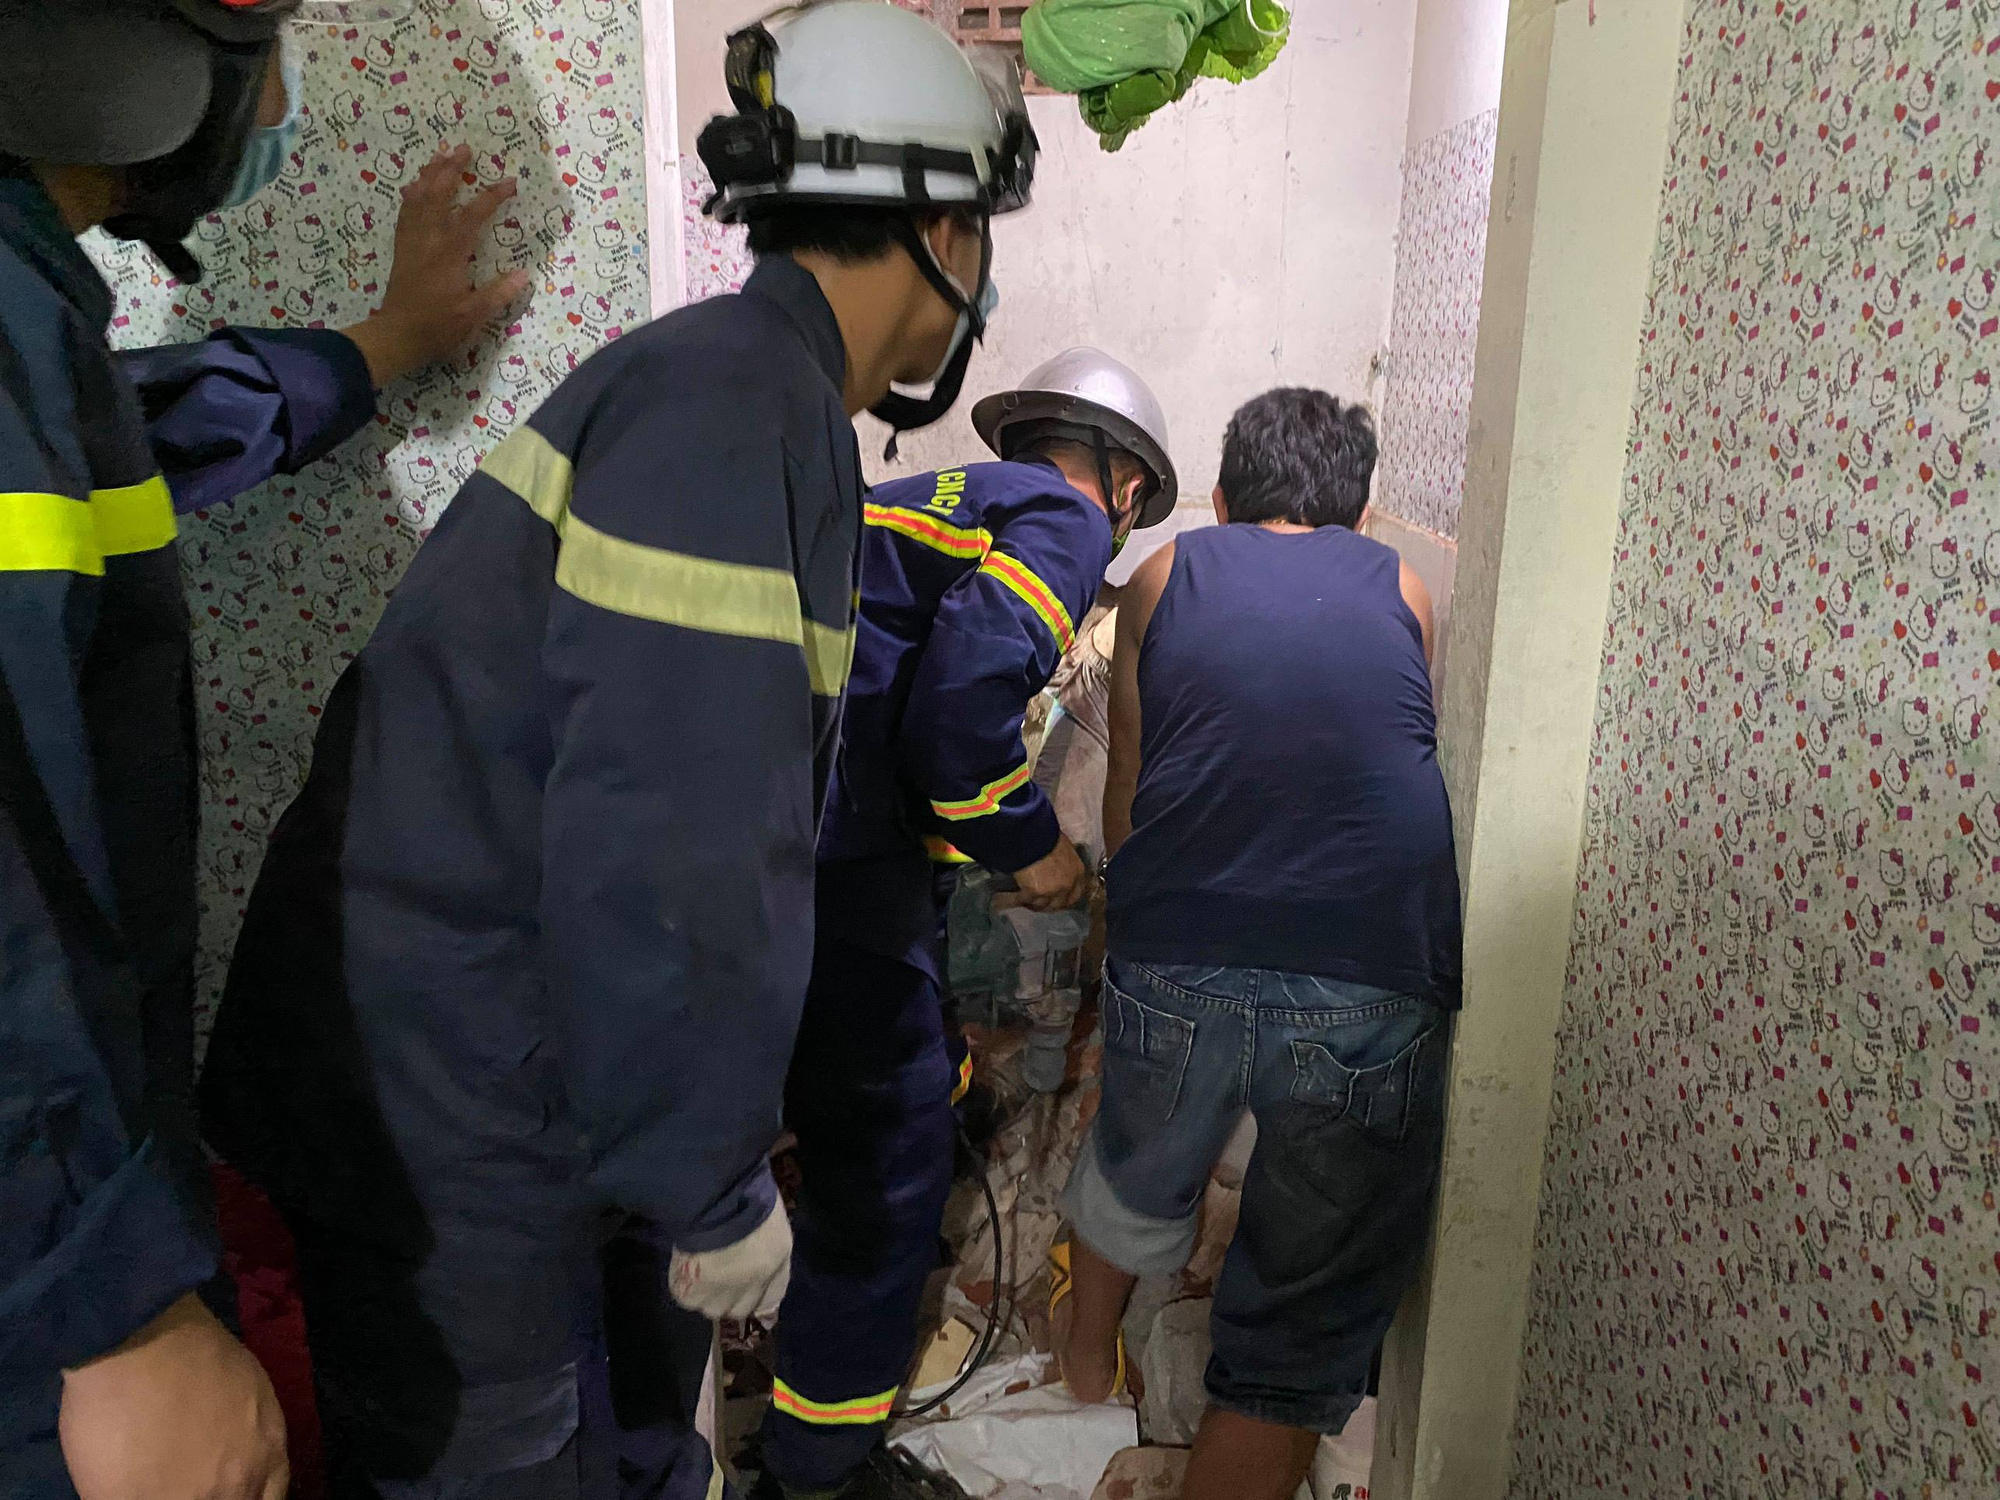 Rescuers try to free C.N.V.T., who was stuck in a narrow gap between two houses in Bac Tu Liem District, Hanoi. Photo: Anh Ha / Tuoi Tre